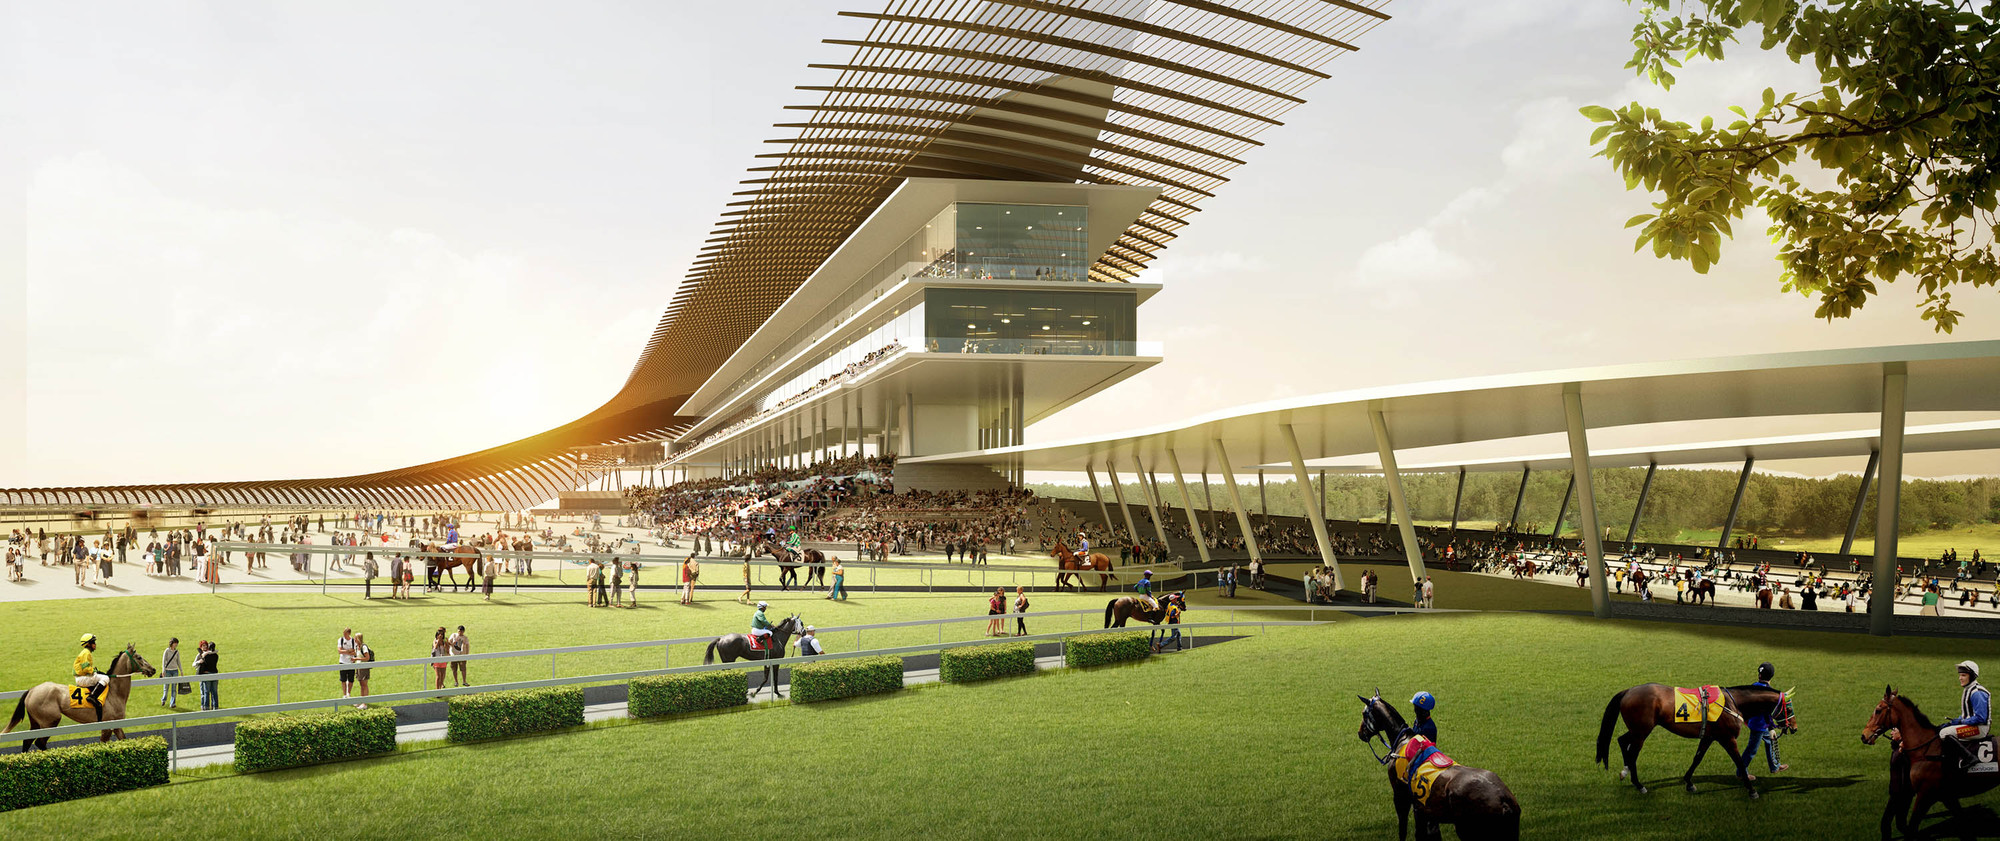 Now and grimshaw to design south korean horseracing track archdaily - Architecture shows ...